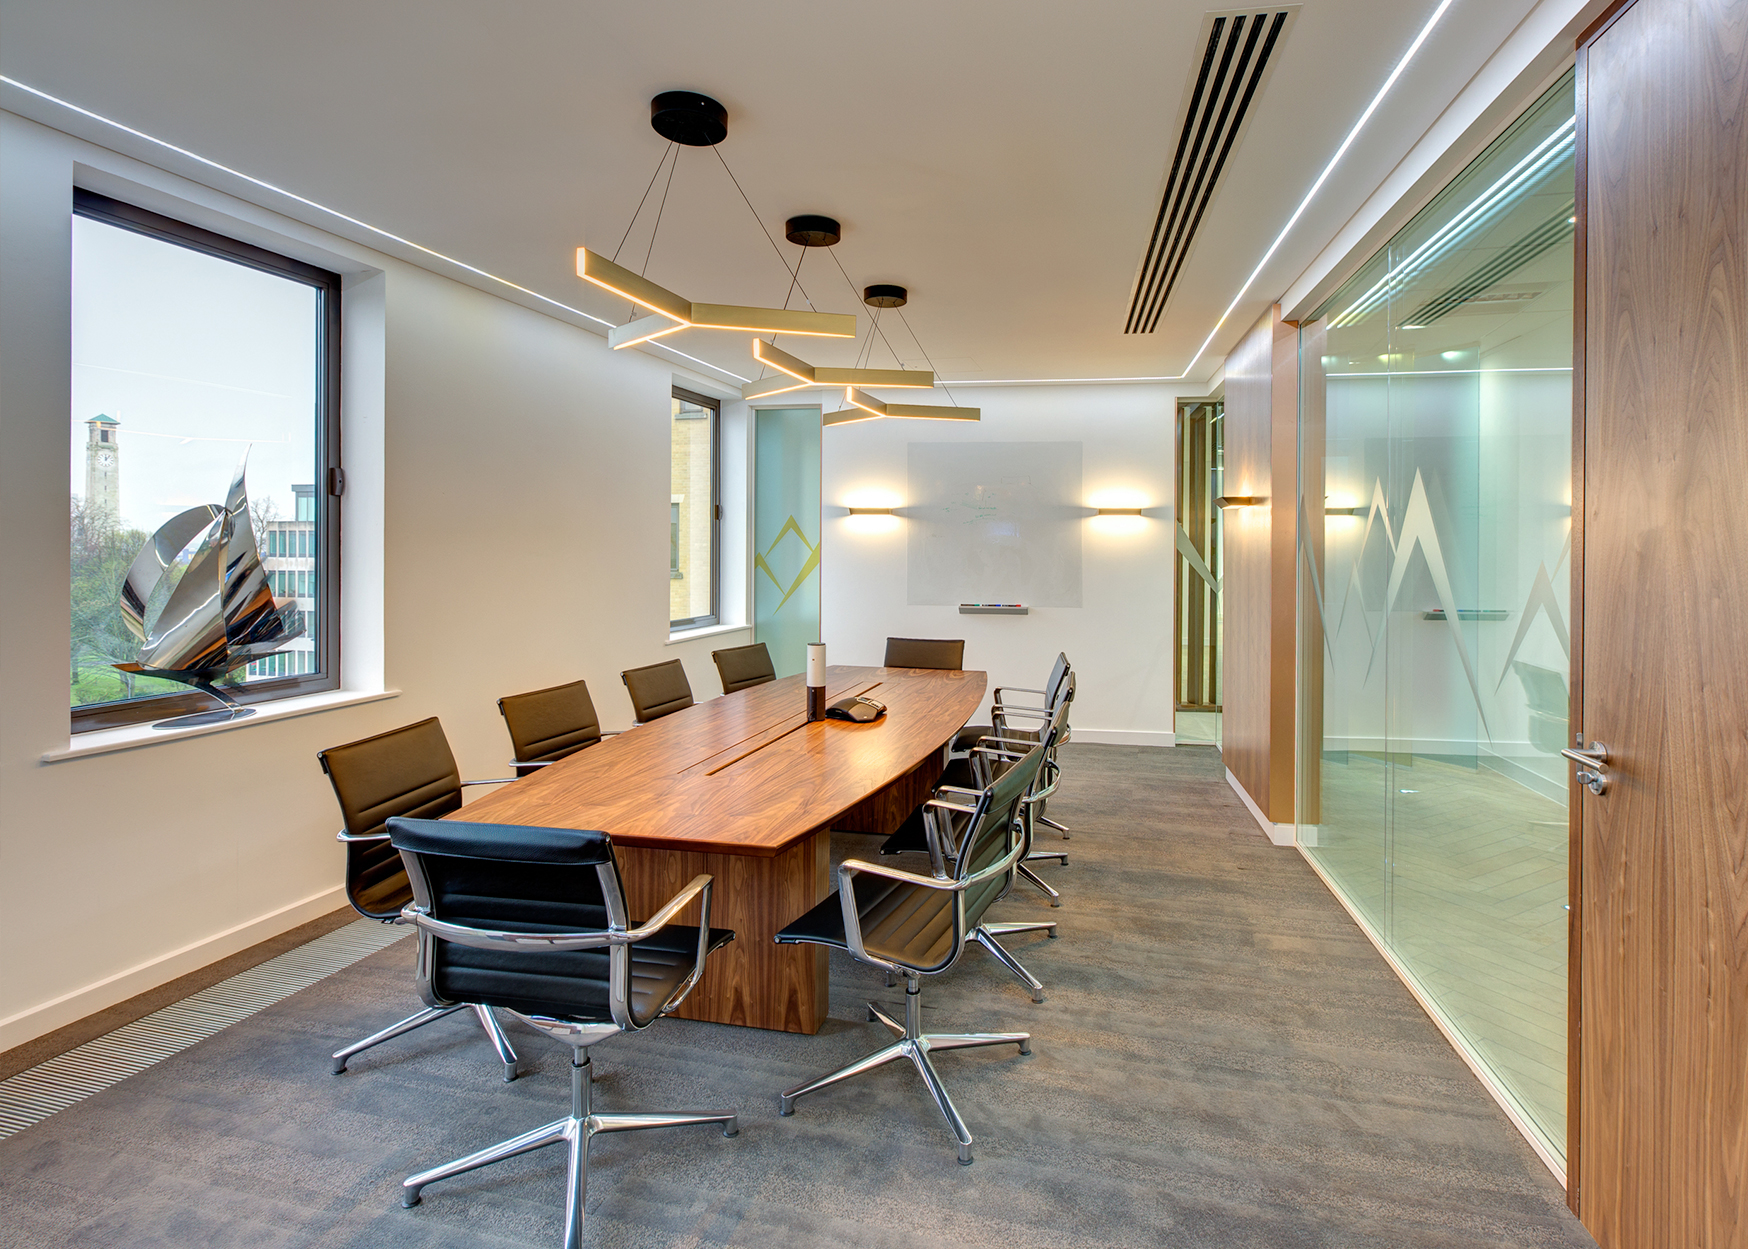 Interior Fit Out High End Specification Design With Glazed Partitioning Bespoke Joinery Feature Flooring Wall Panelling Finishes